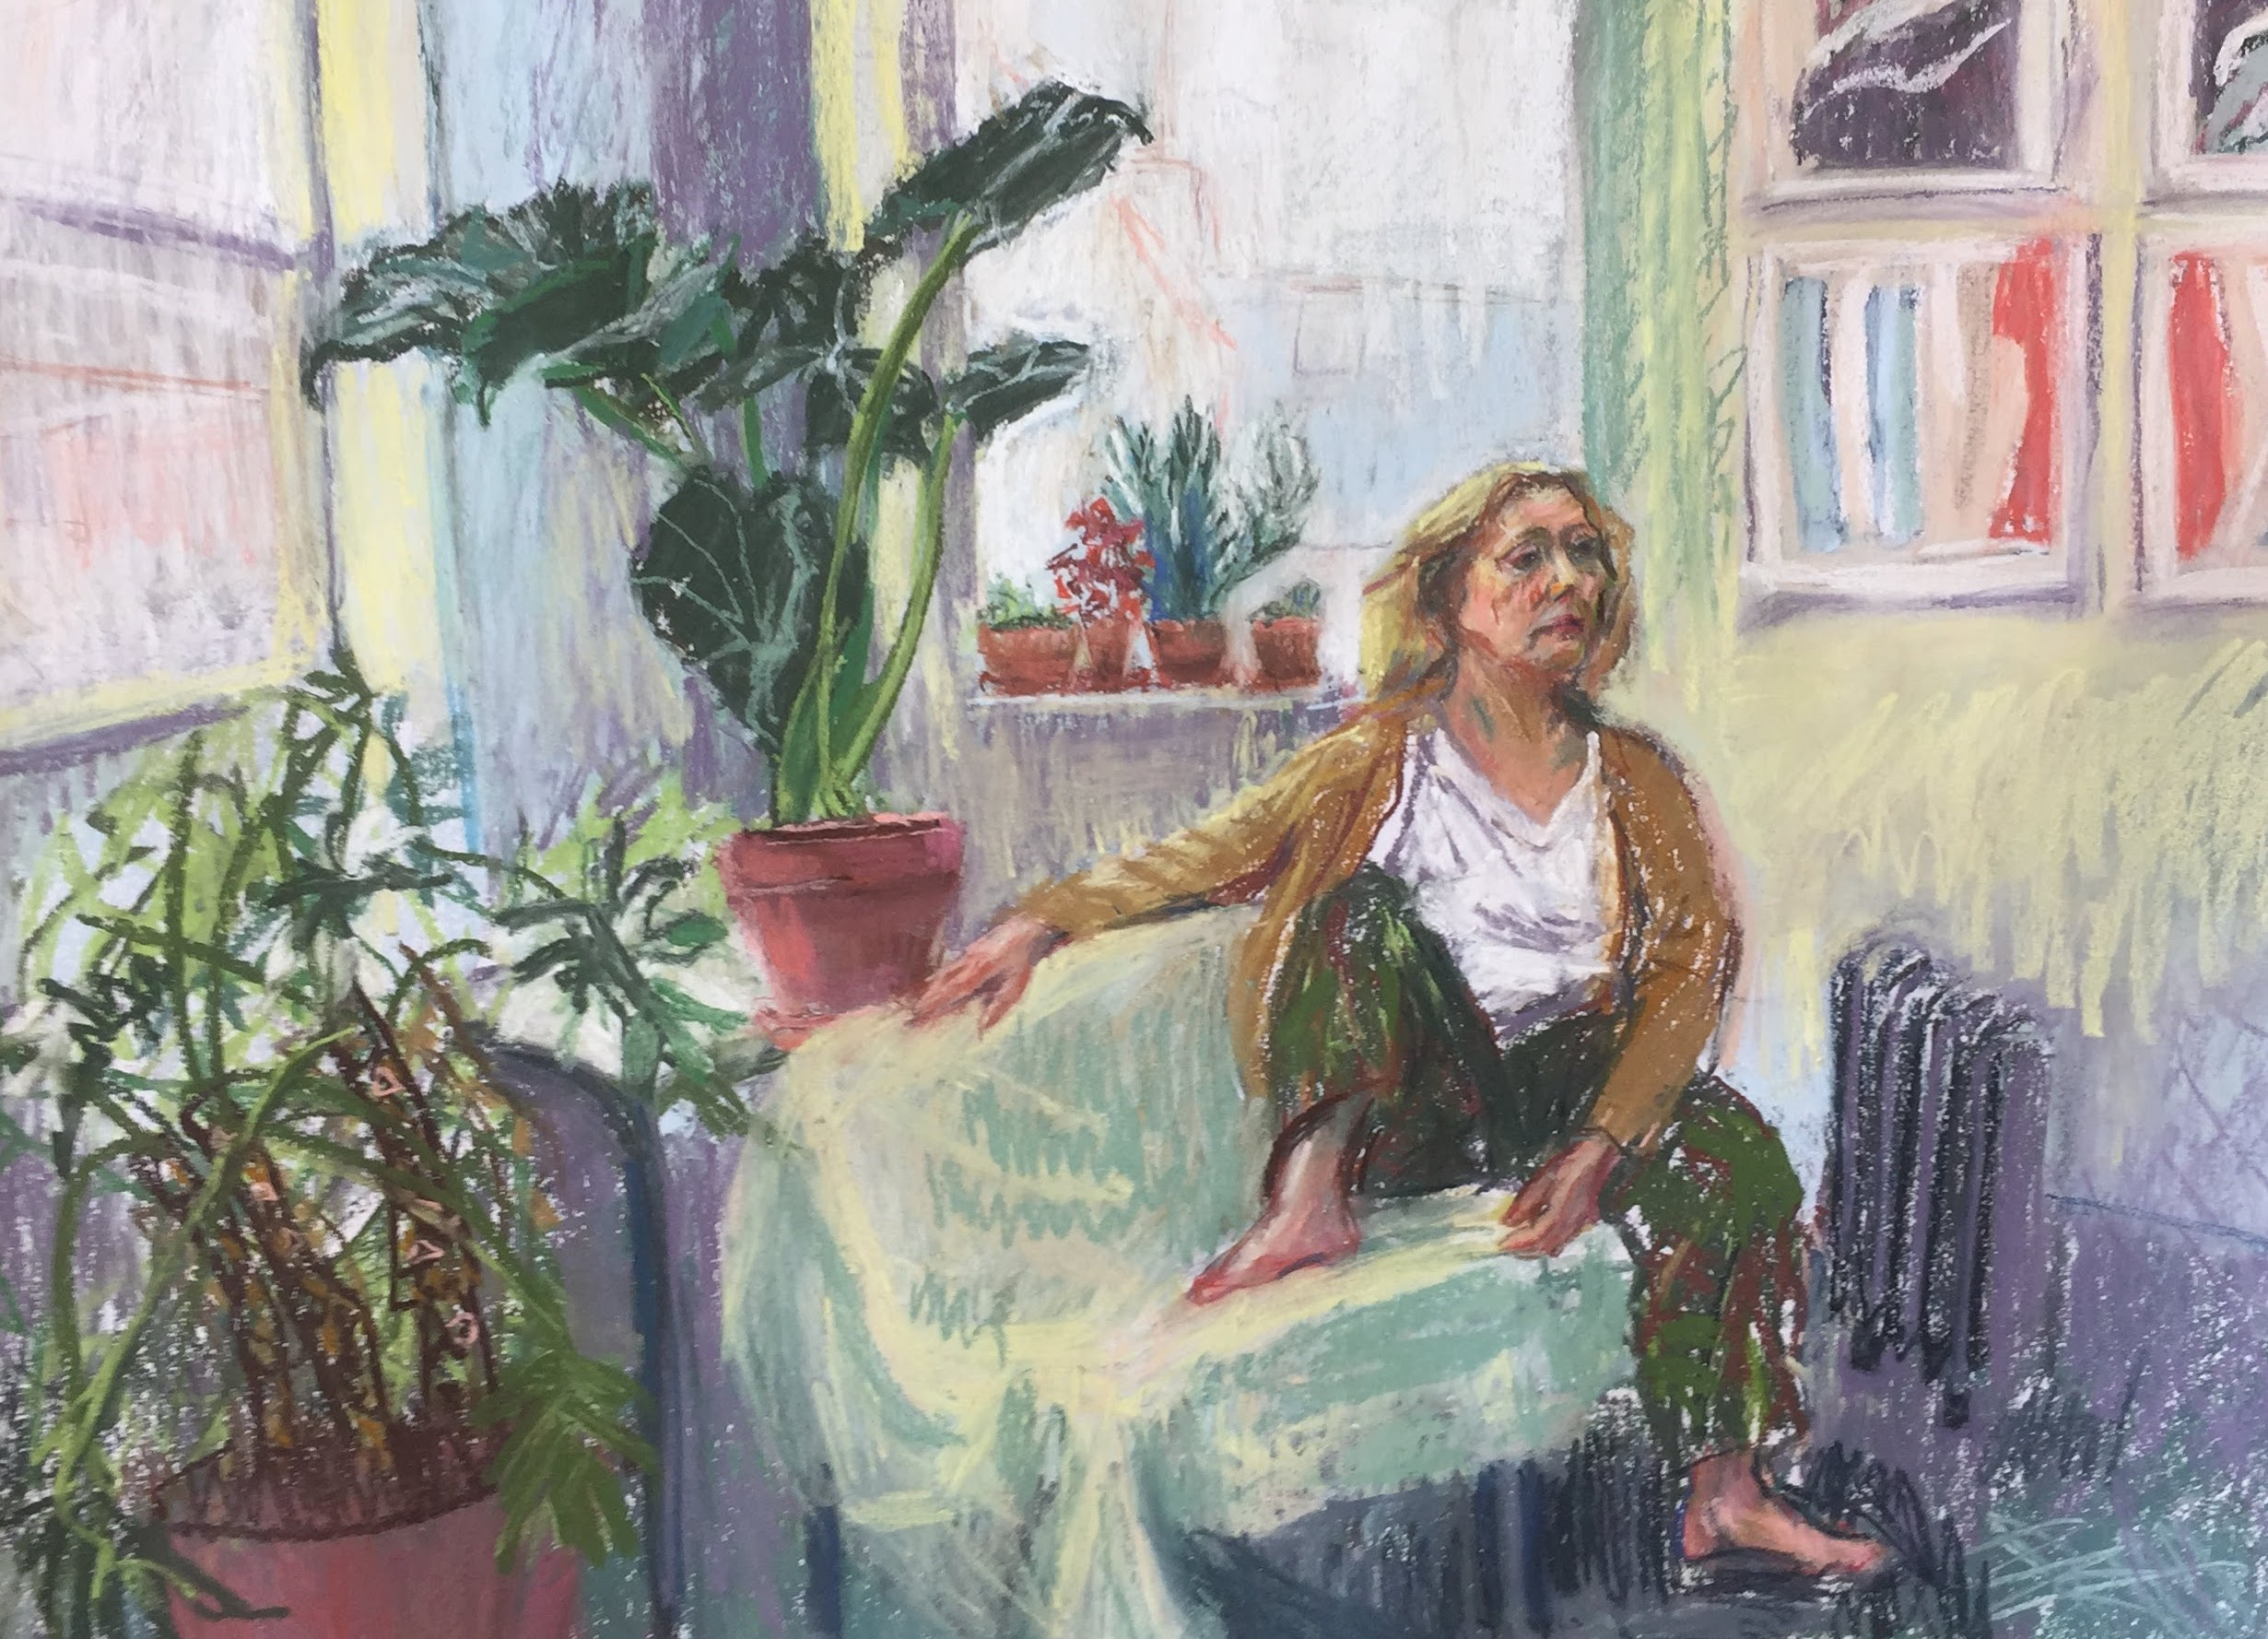 Stephanie and plants   Unison Pastels on Paper  by Sally Hyman